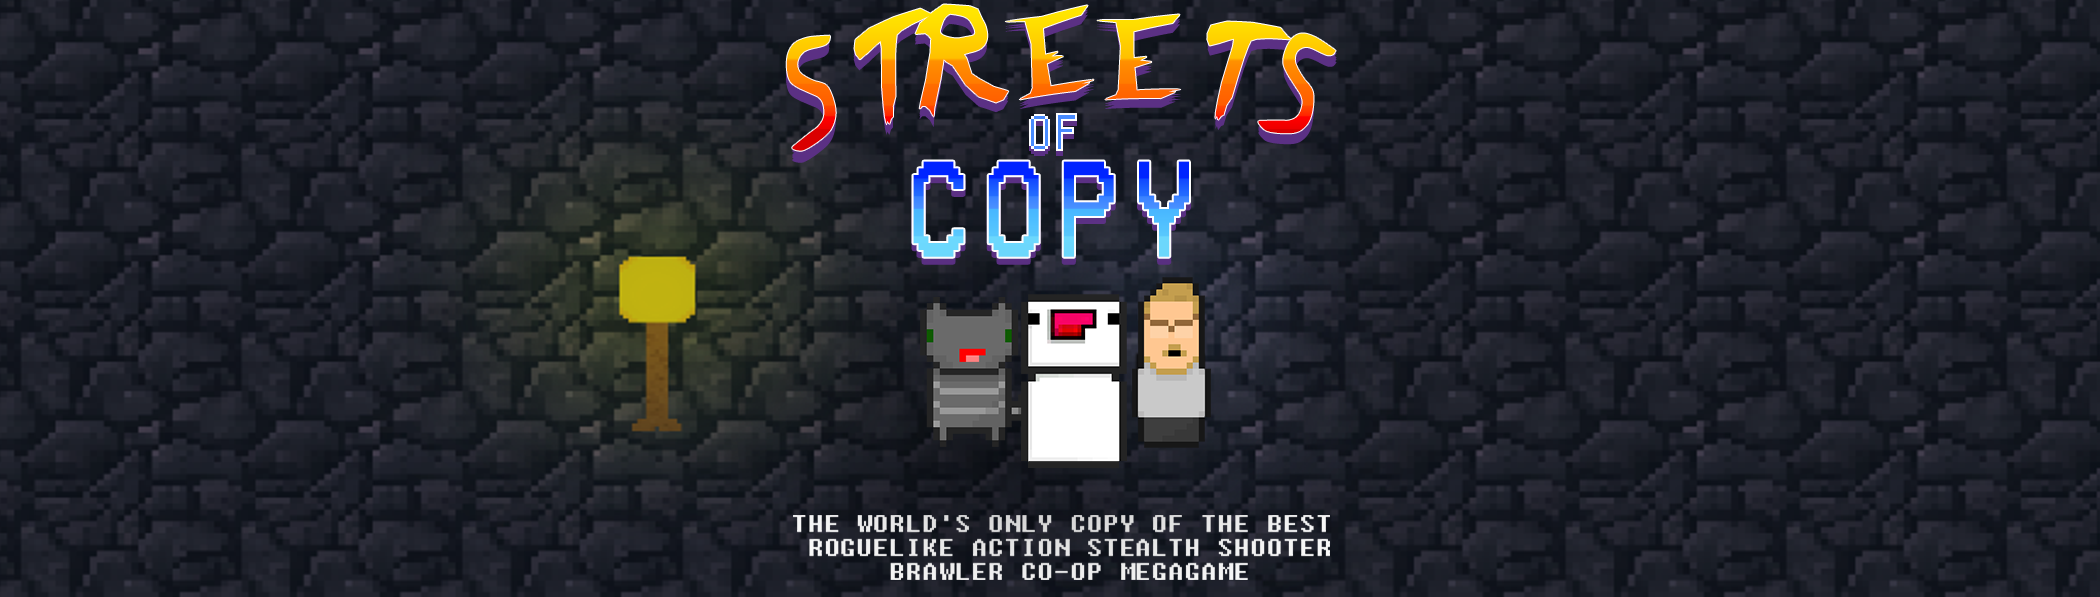 Streets Of Copy - Construct 2 Engine